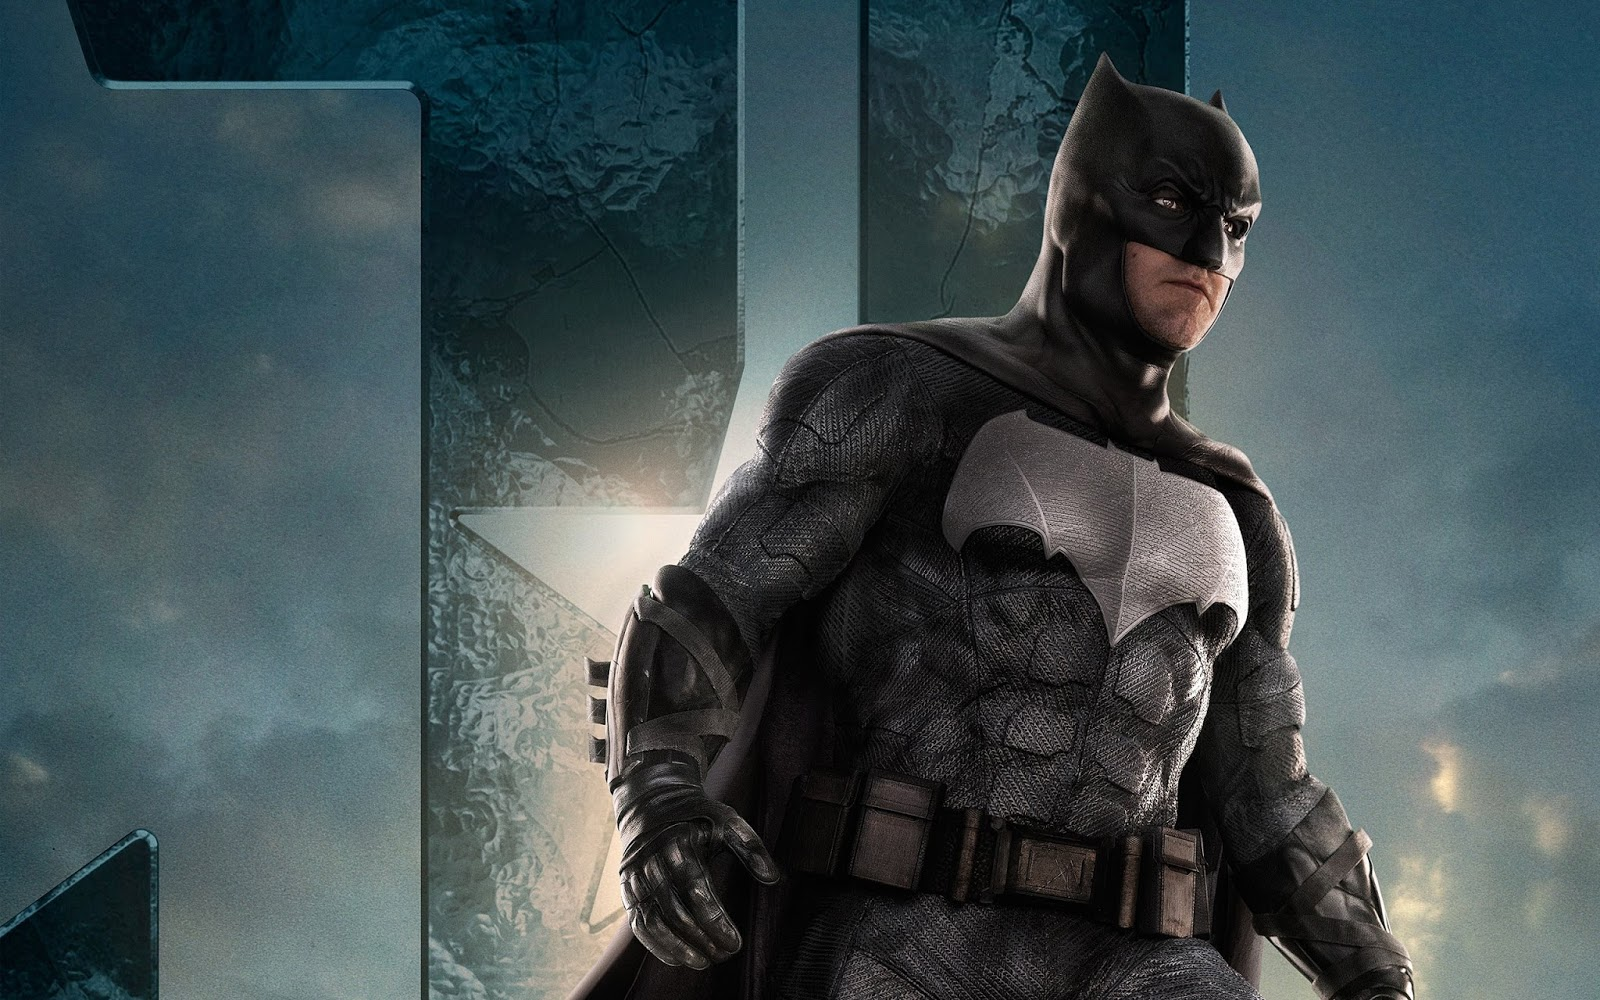 Justice League Batman HD Wallpaper-Justice League Full HD Wallpapers